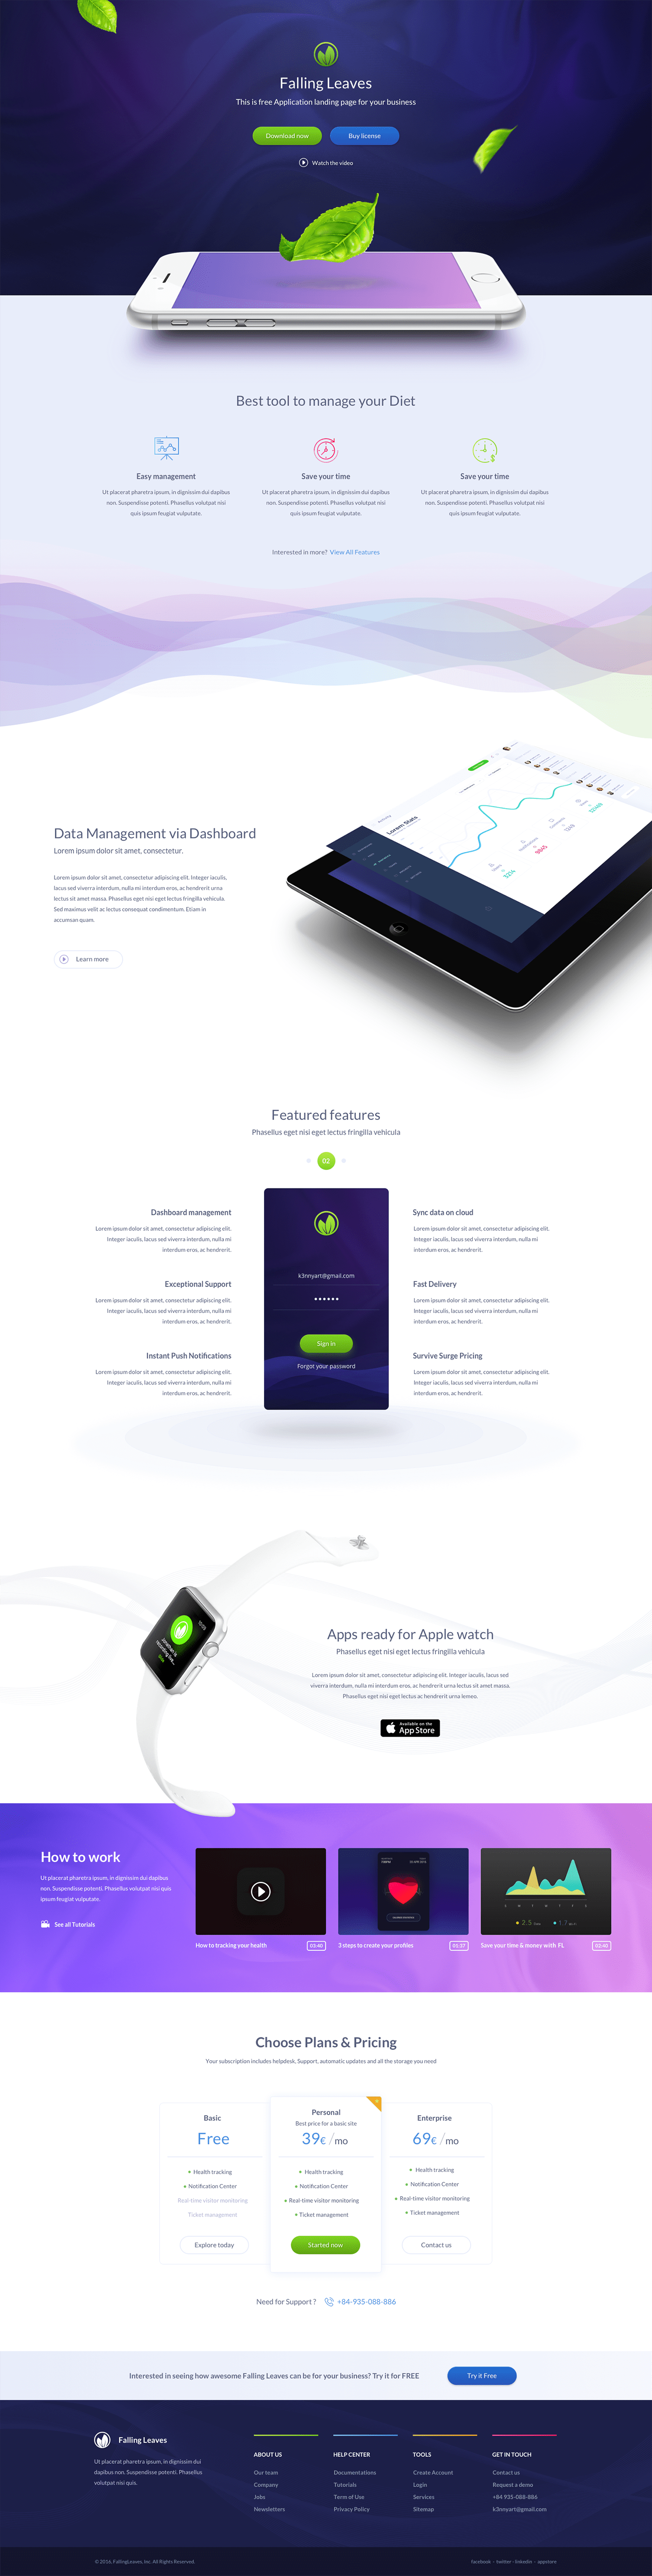 One Page App Landing Page - Inspired by the mobile trends and trying to solve the problem of most startups with simple & information featured one page app landing.